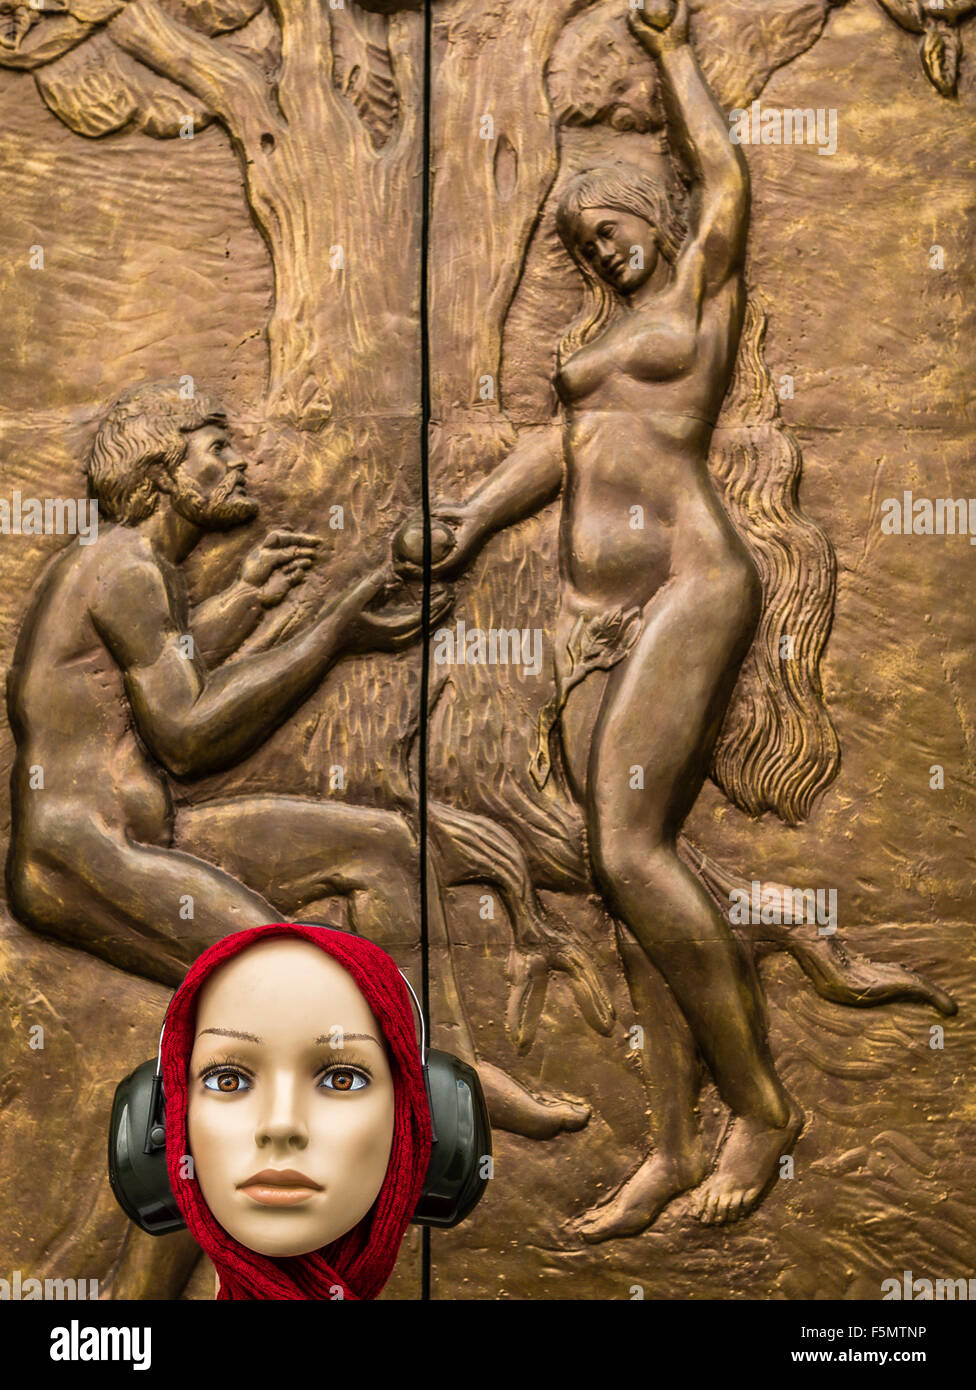 Genara listening to music, indifferent to the environment, to a high relief depicting Eve offering Adam the apple. - Stock Image